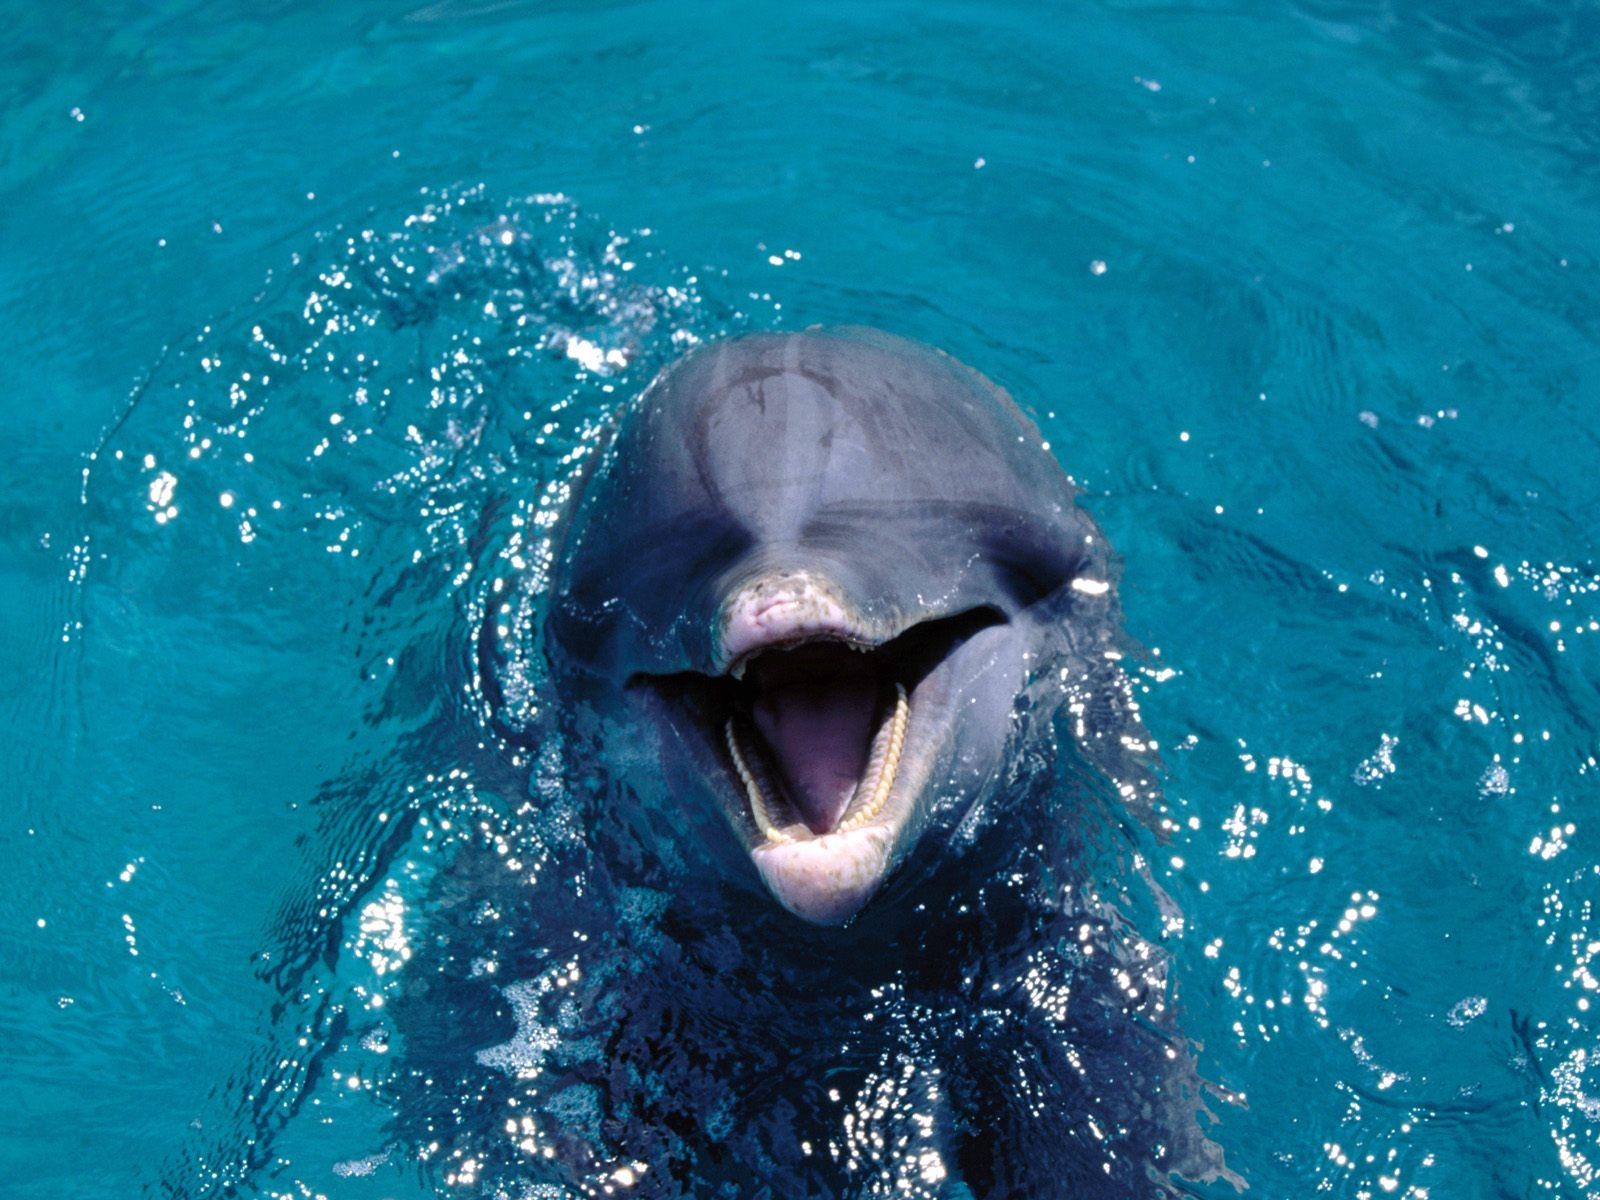 HD Dolphin Wallpapers - HD Animal Wallpapers